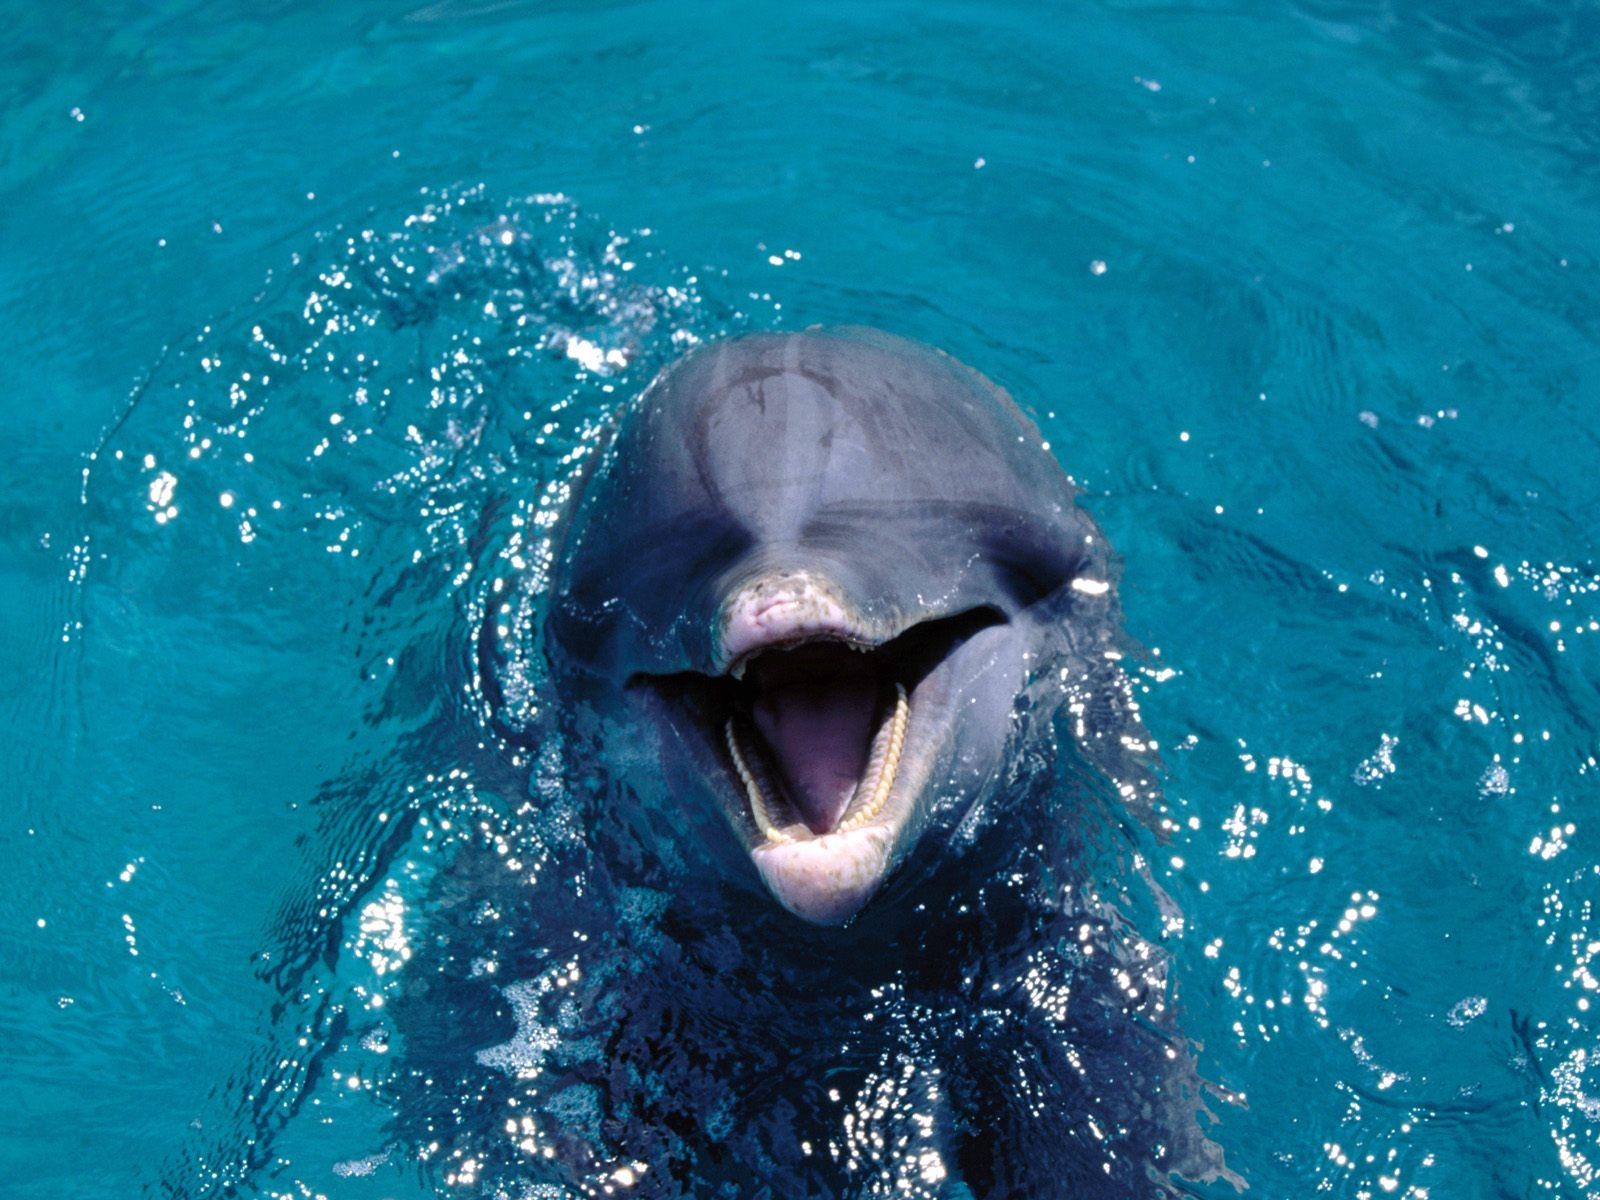 HD Dolphin Wallpapers - HD Animal Wallpapers